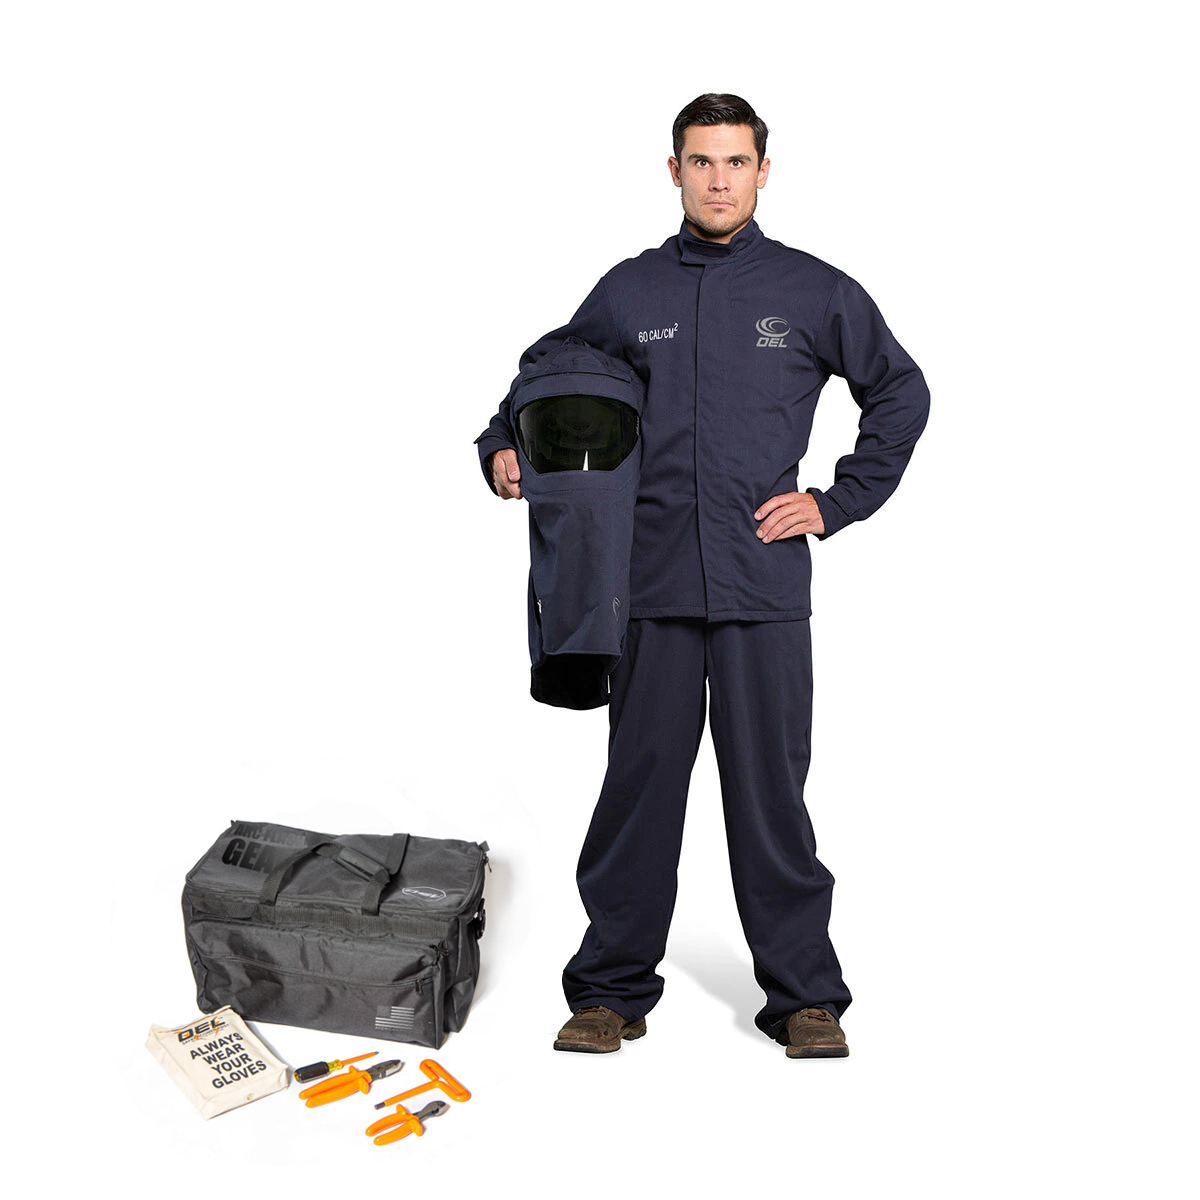 60 CAL Jacket and Bib Overalls Kit - (Without Gloves) with Switch Gear Hood